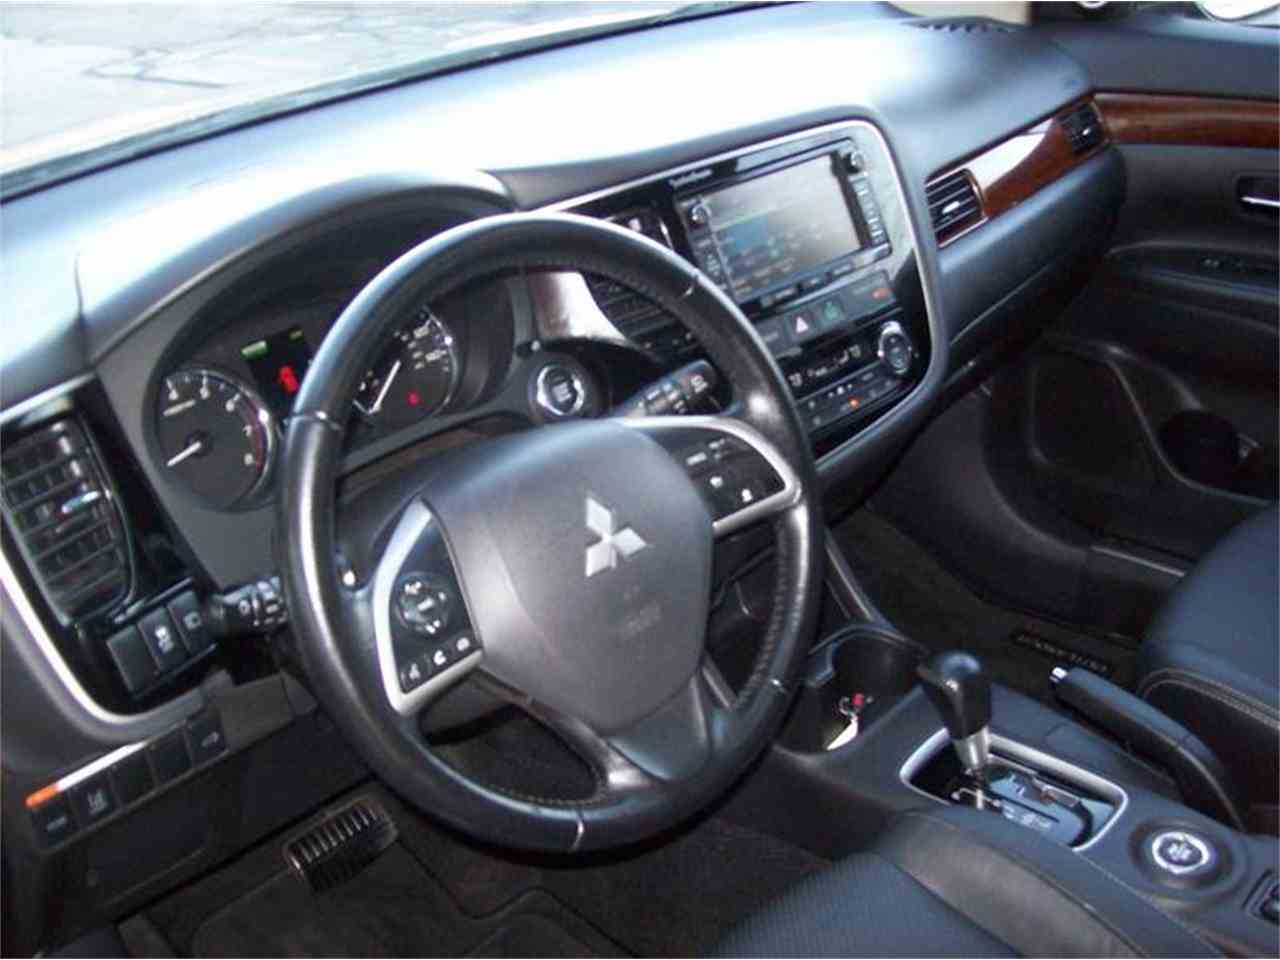 Large Picture of 2014 Mitsubishi Outlander located in Michigan - $17,495.00 - MB5J